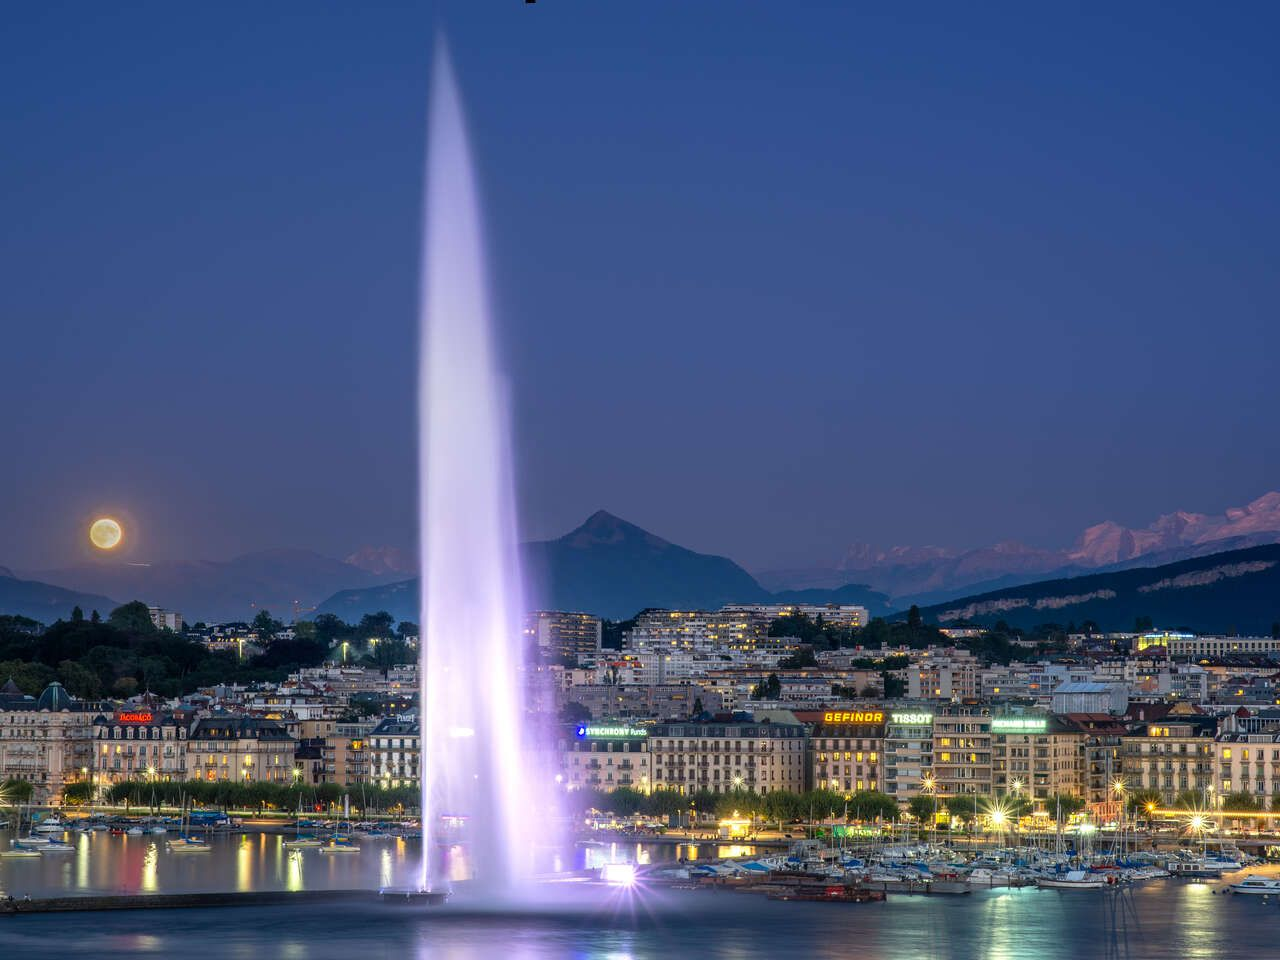 The Jet d'Eau illuminated at night with full moon